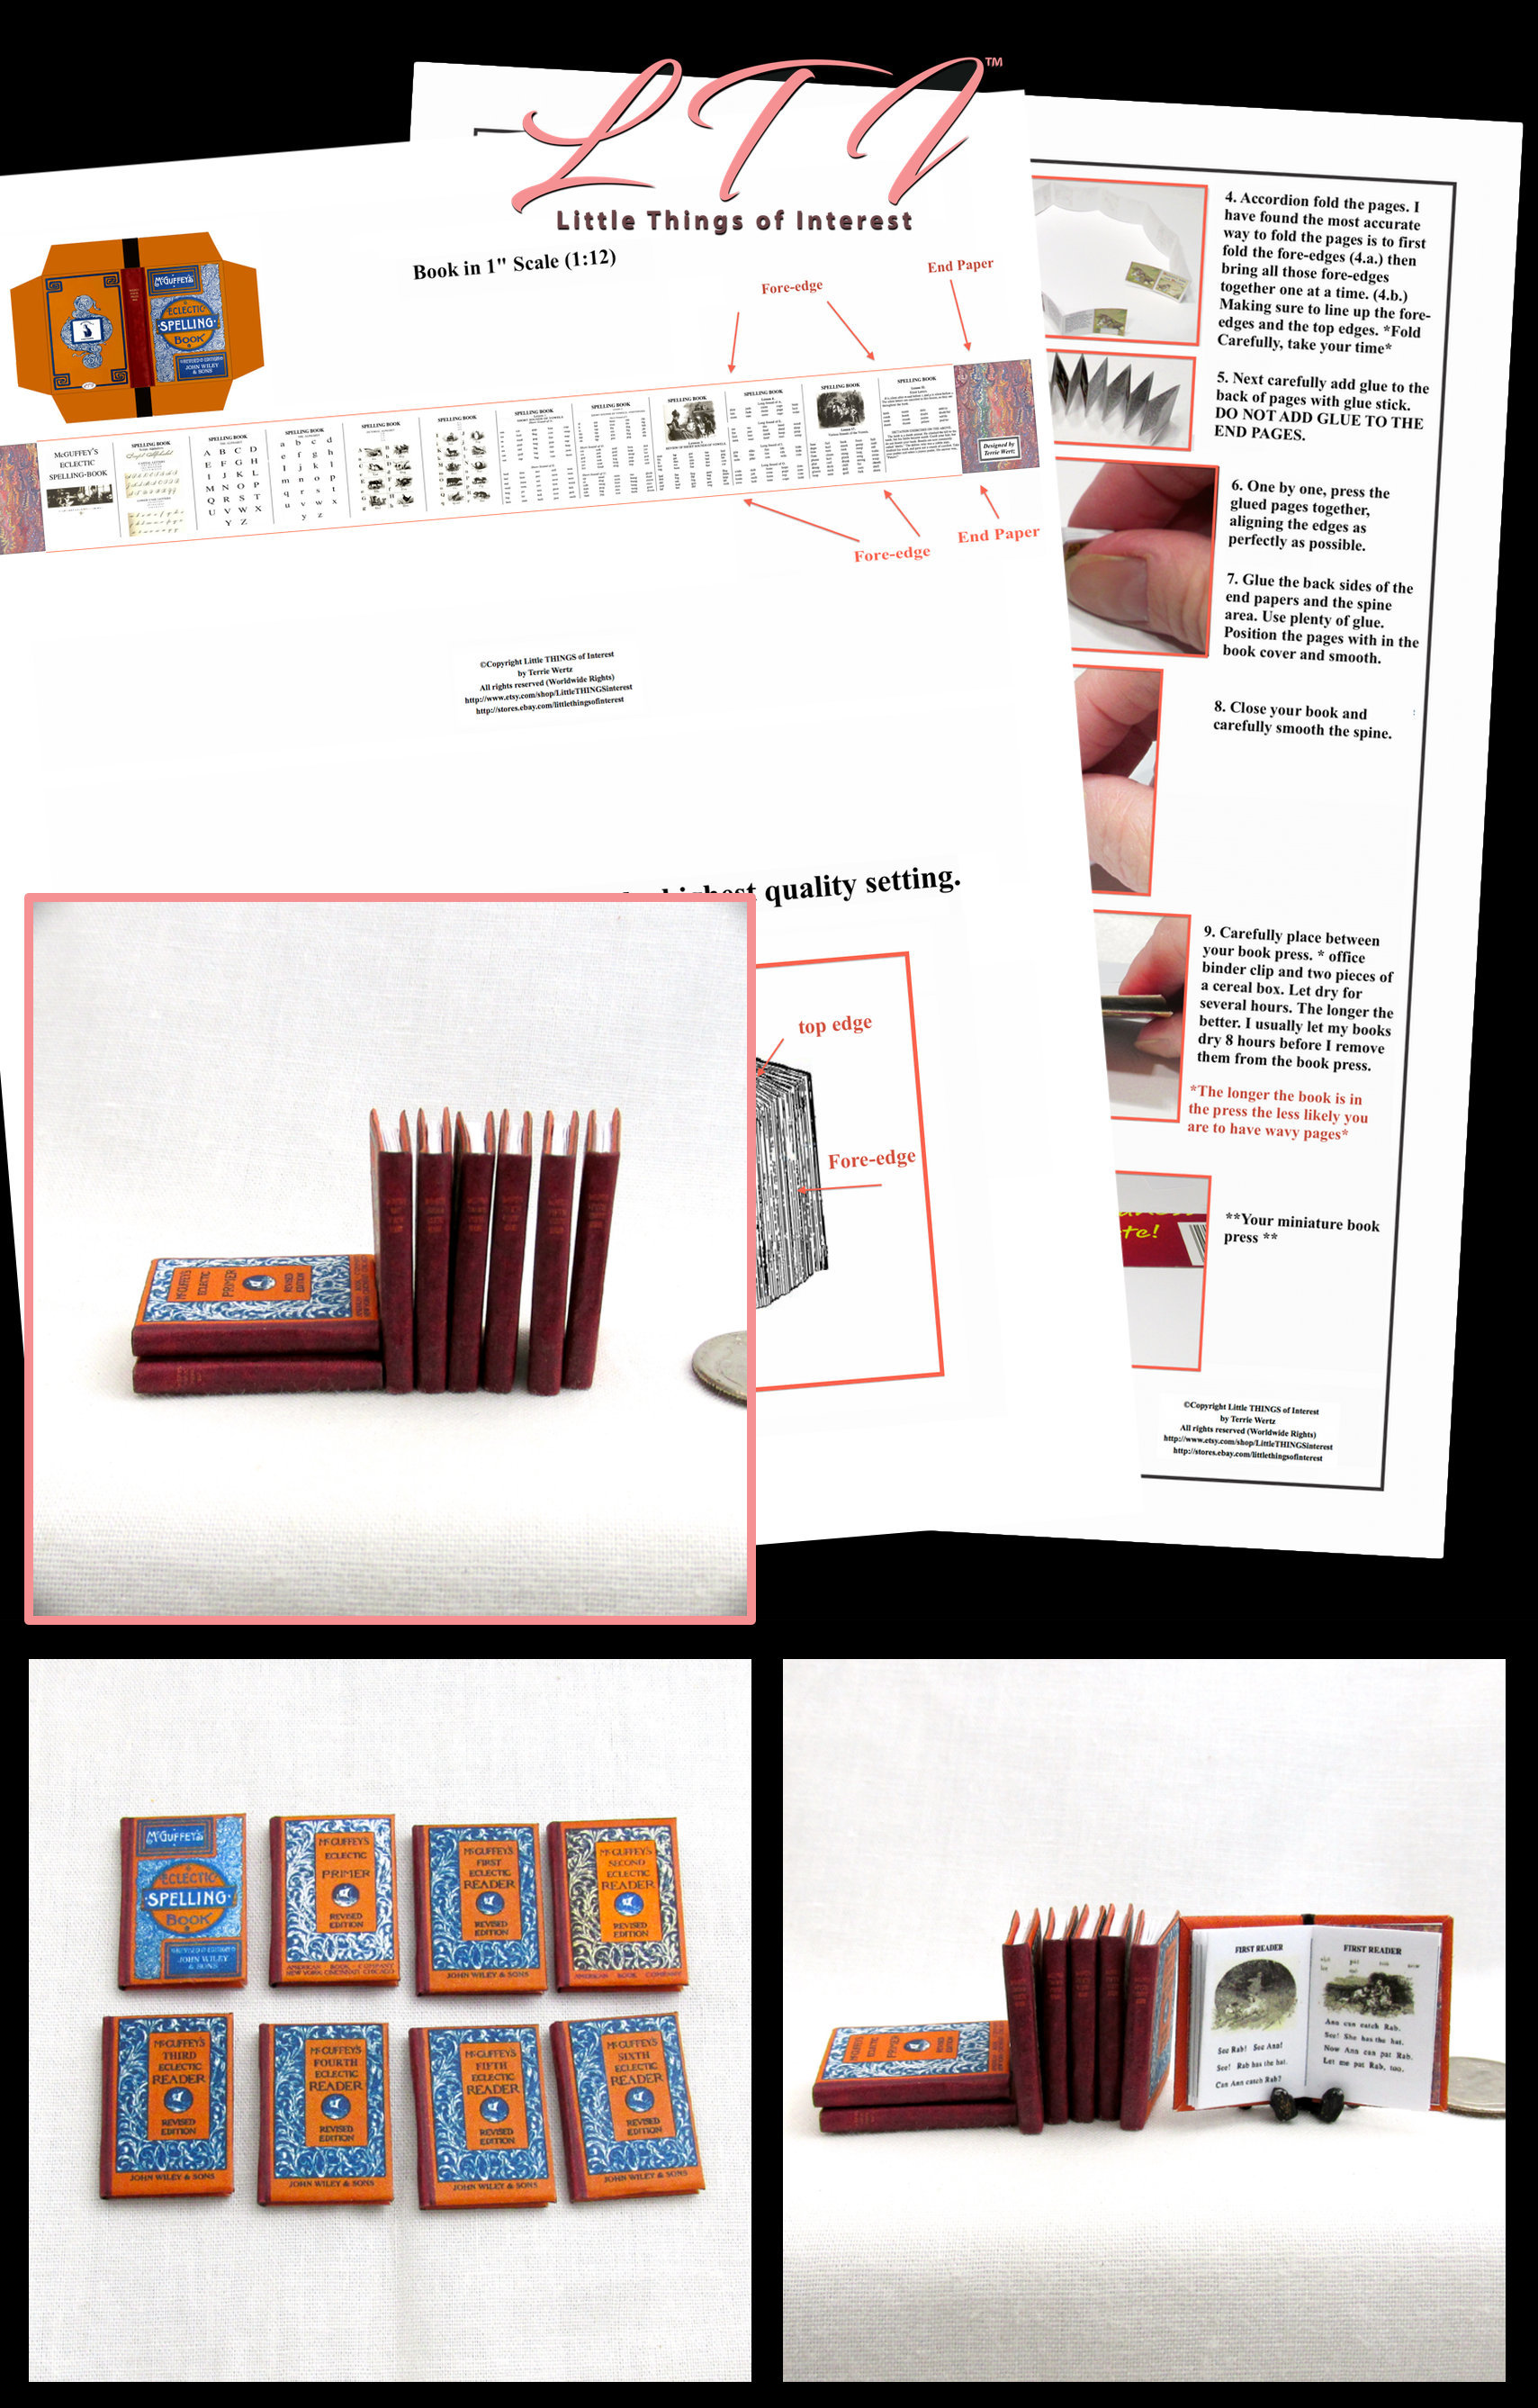 image regarding Miniature Books Printable named McGUFFEY Guests 8 Dollhouse Miniature Guides 1:12 Finish Established